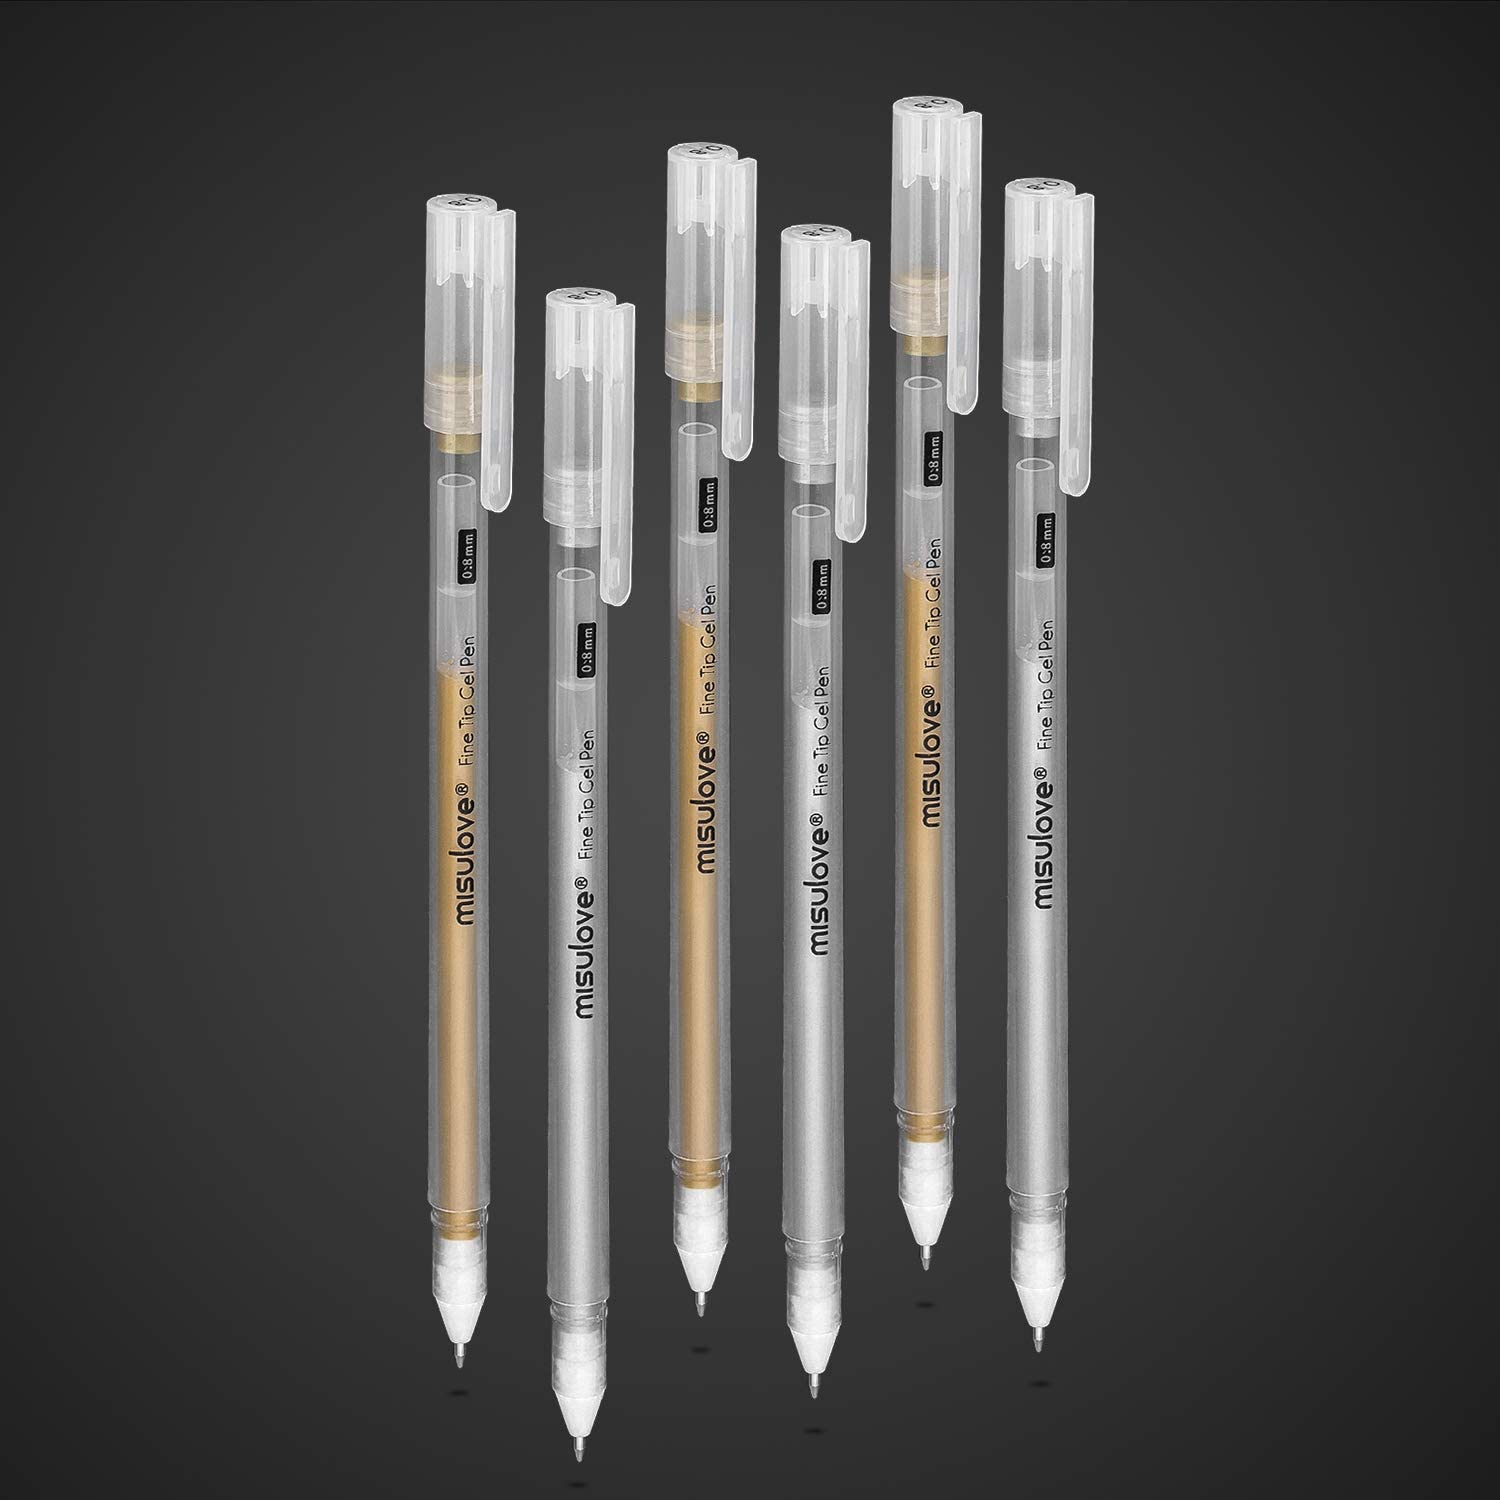 MISULOVE White Gel Pens Sketching White Art Pen for Artists Drawing Illustration Deisgn Fine Point 0.8mm 3 Pack Opaque White Archival Ink Pens Black Paper